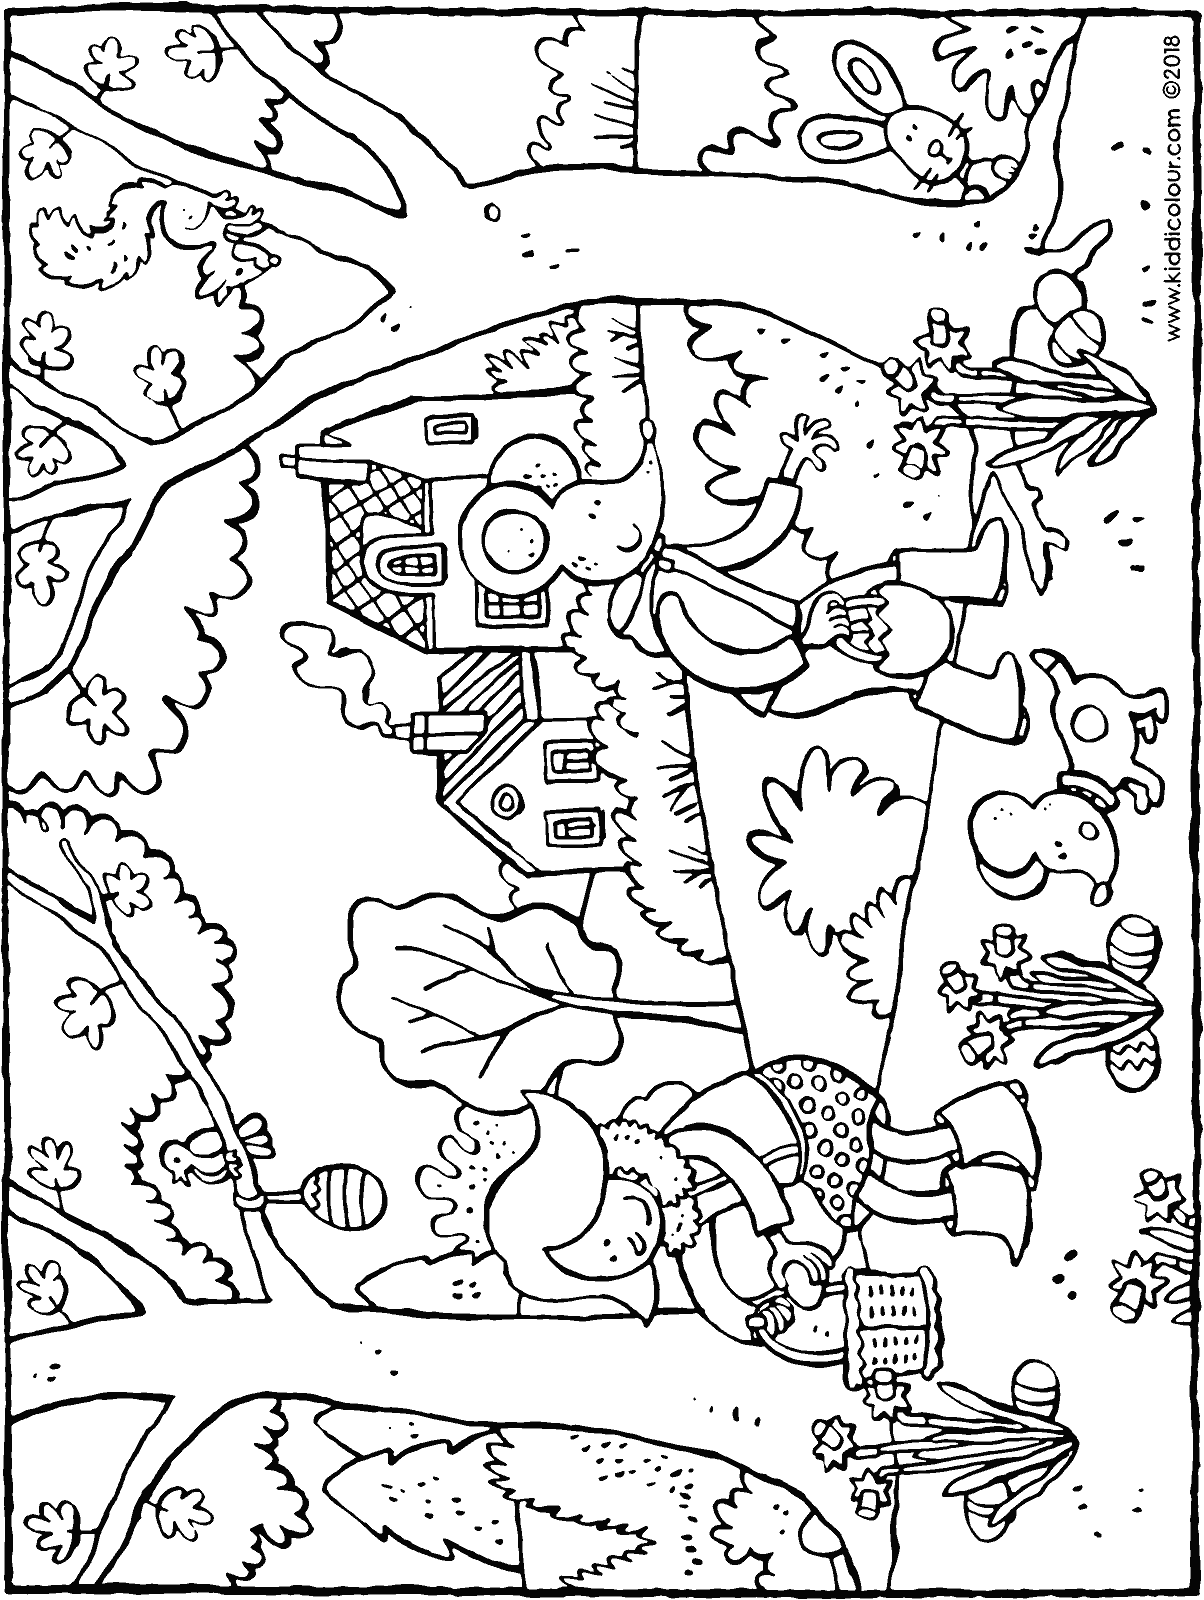 Emma and Thomas collecting Easter eggs colouring page drawing picture 01H